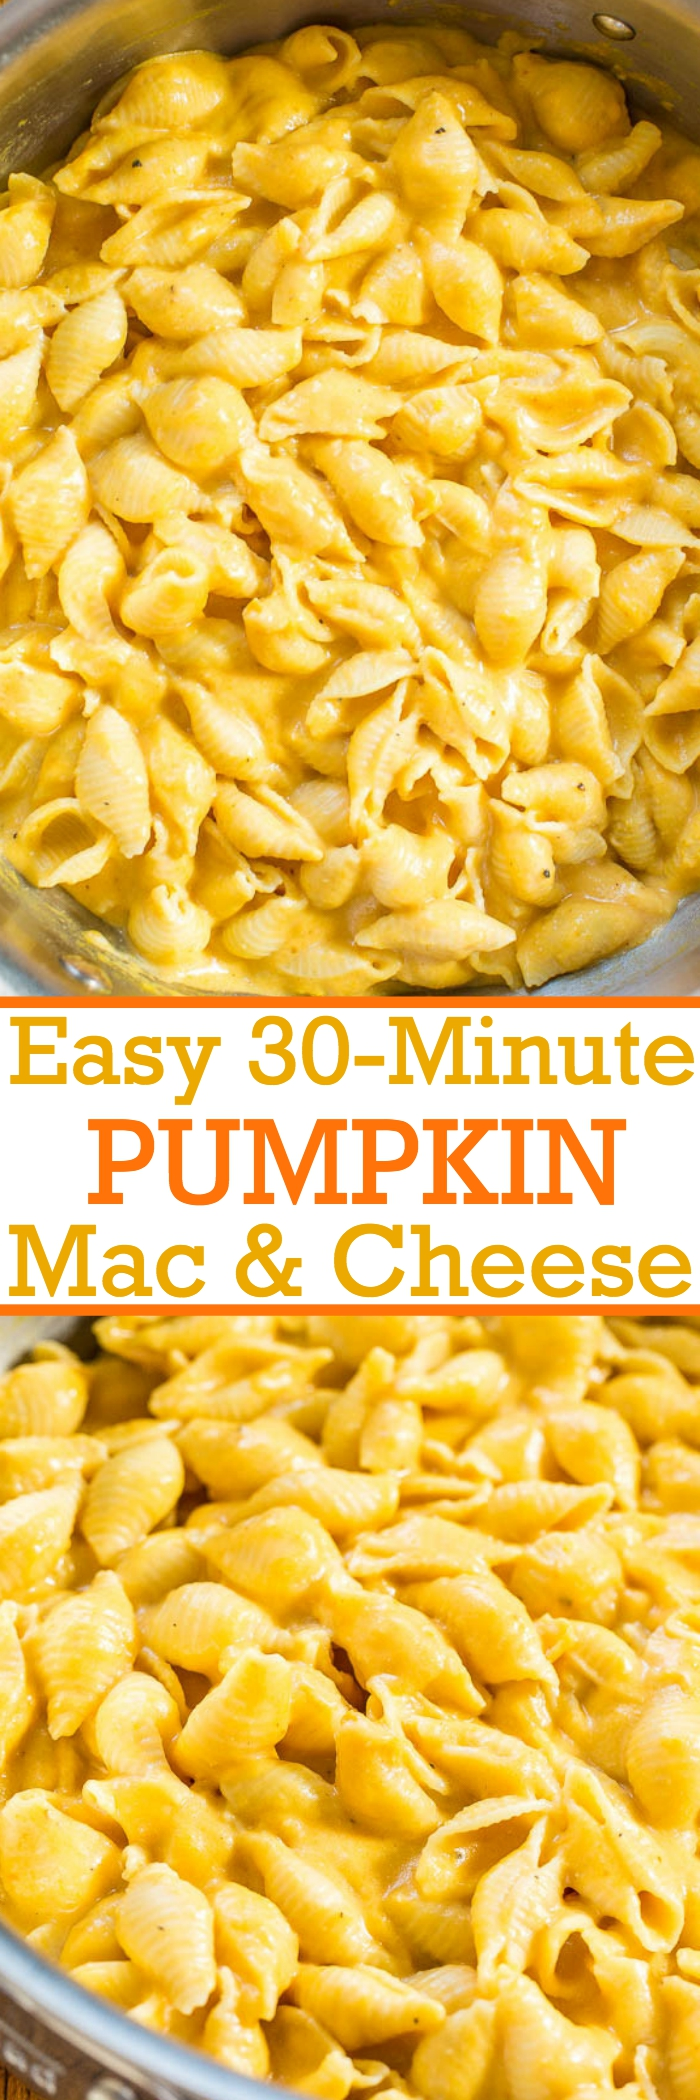 Easy 30 minute stove top pumpkin macaroni and cheese - the flavor of the pumpkin is subtle compared to the super CHEESE and creamy factor! Pumpkin increases the cheesy to a whole new level that everyone loves!